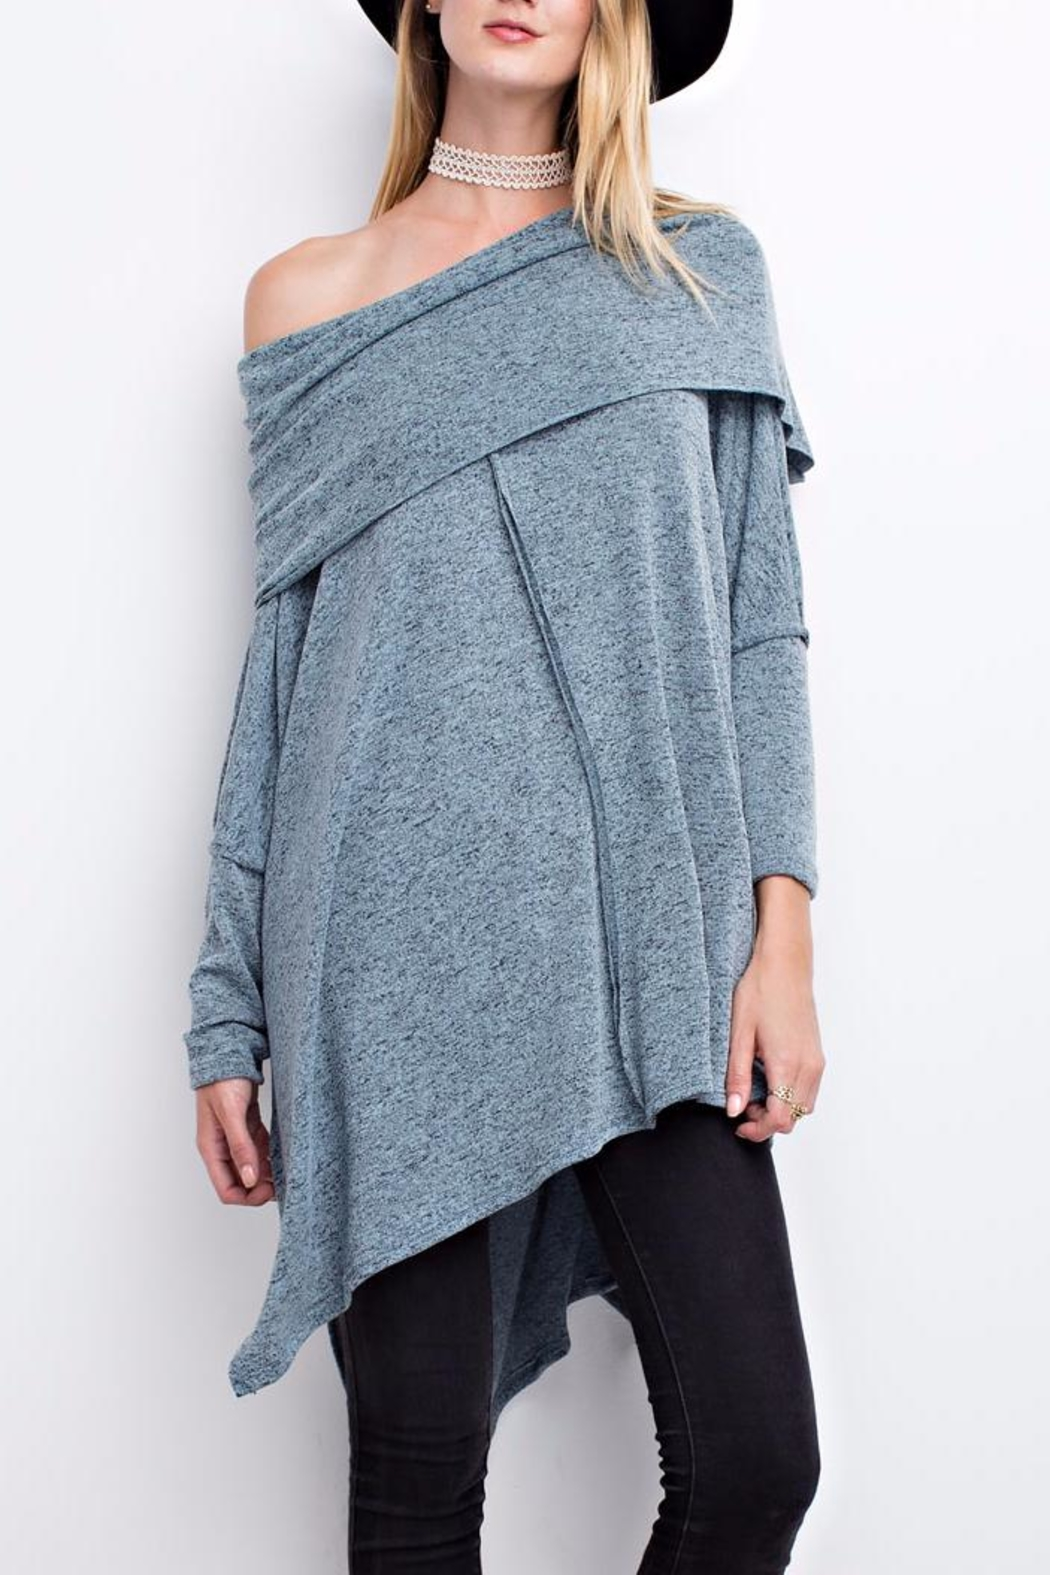 People Outfitter Tequila Swing Top - Side Cropped Image